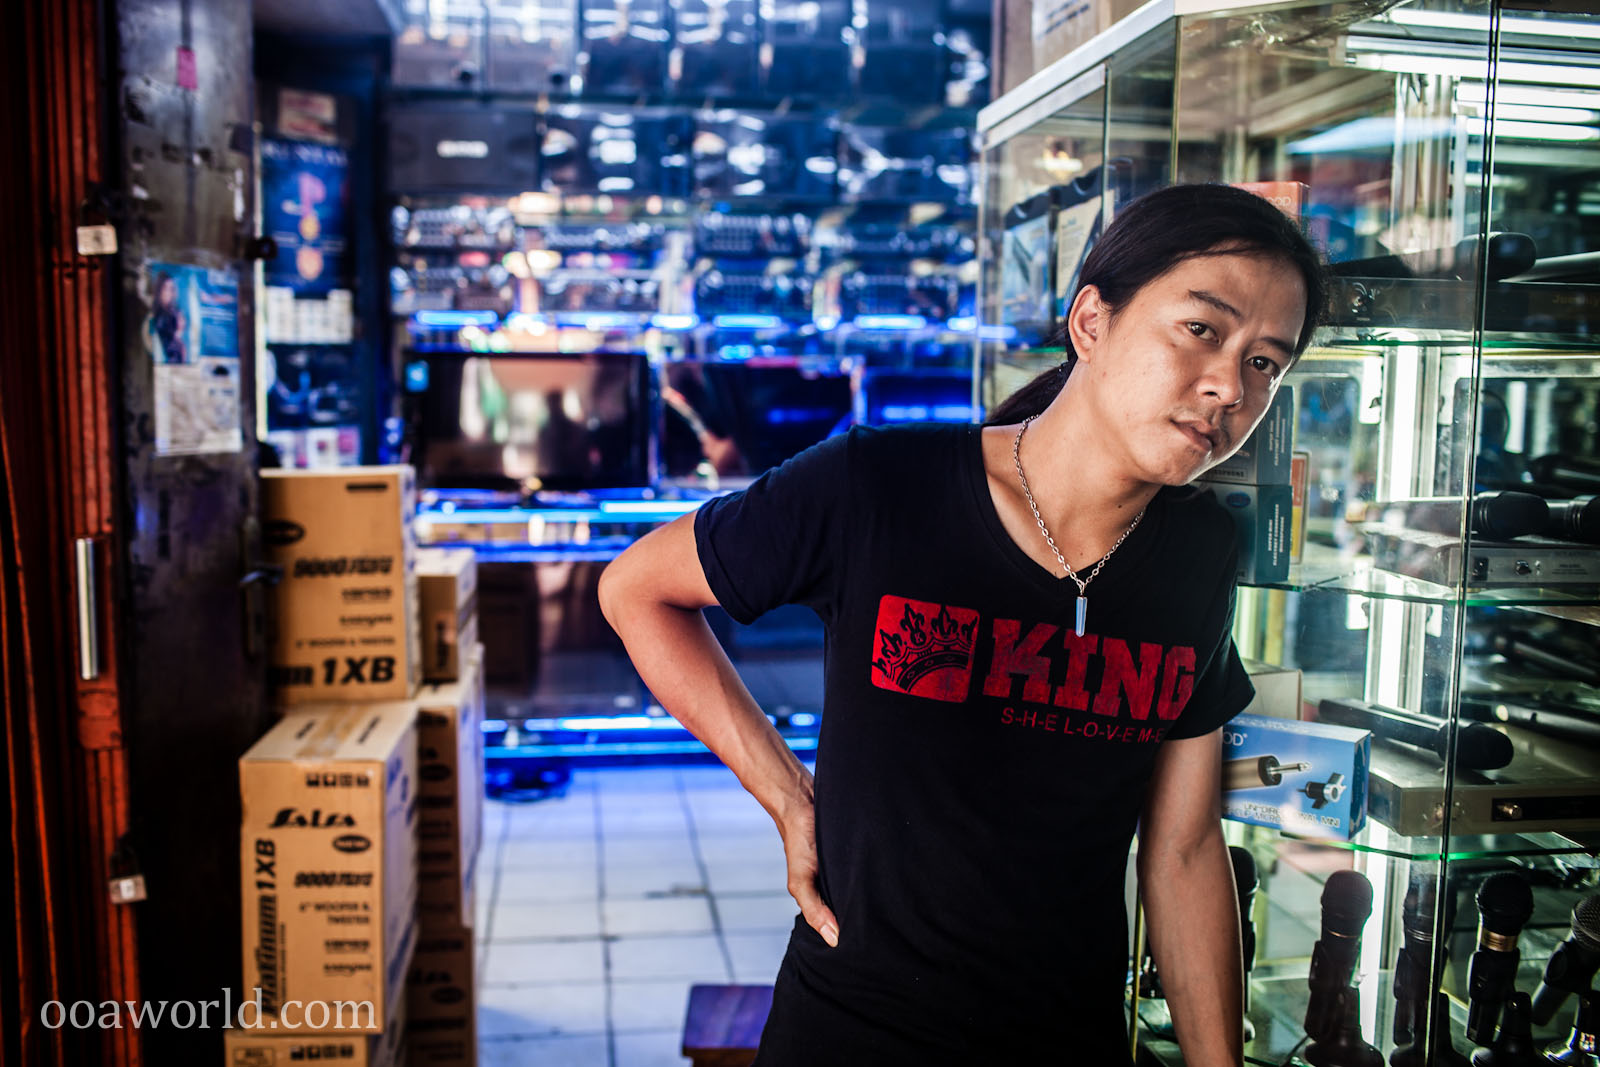 Portrait Electronic Shopkeeper Jakarta Photo Ooaworld